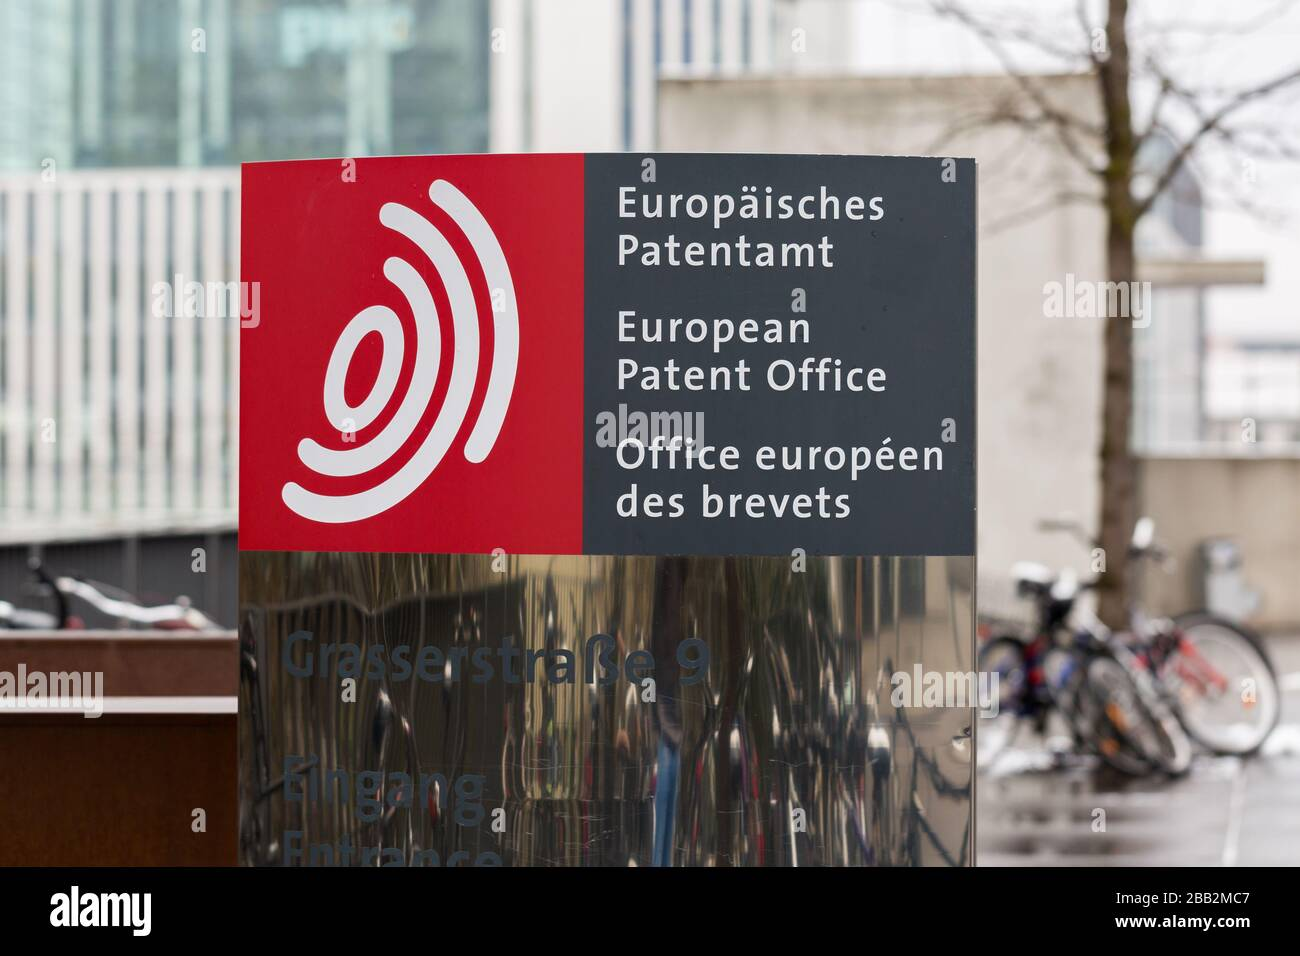 Sign at the entrance of the European Patent Office headquarters in Munich (EPO). Dealing with intellectual property, protection of copyrights. Stock Photo